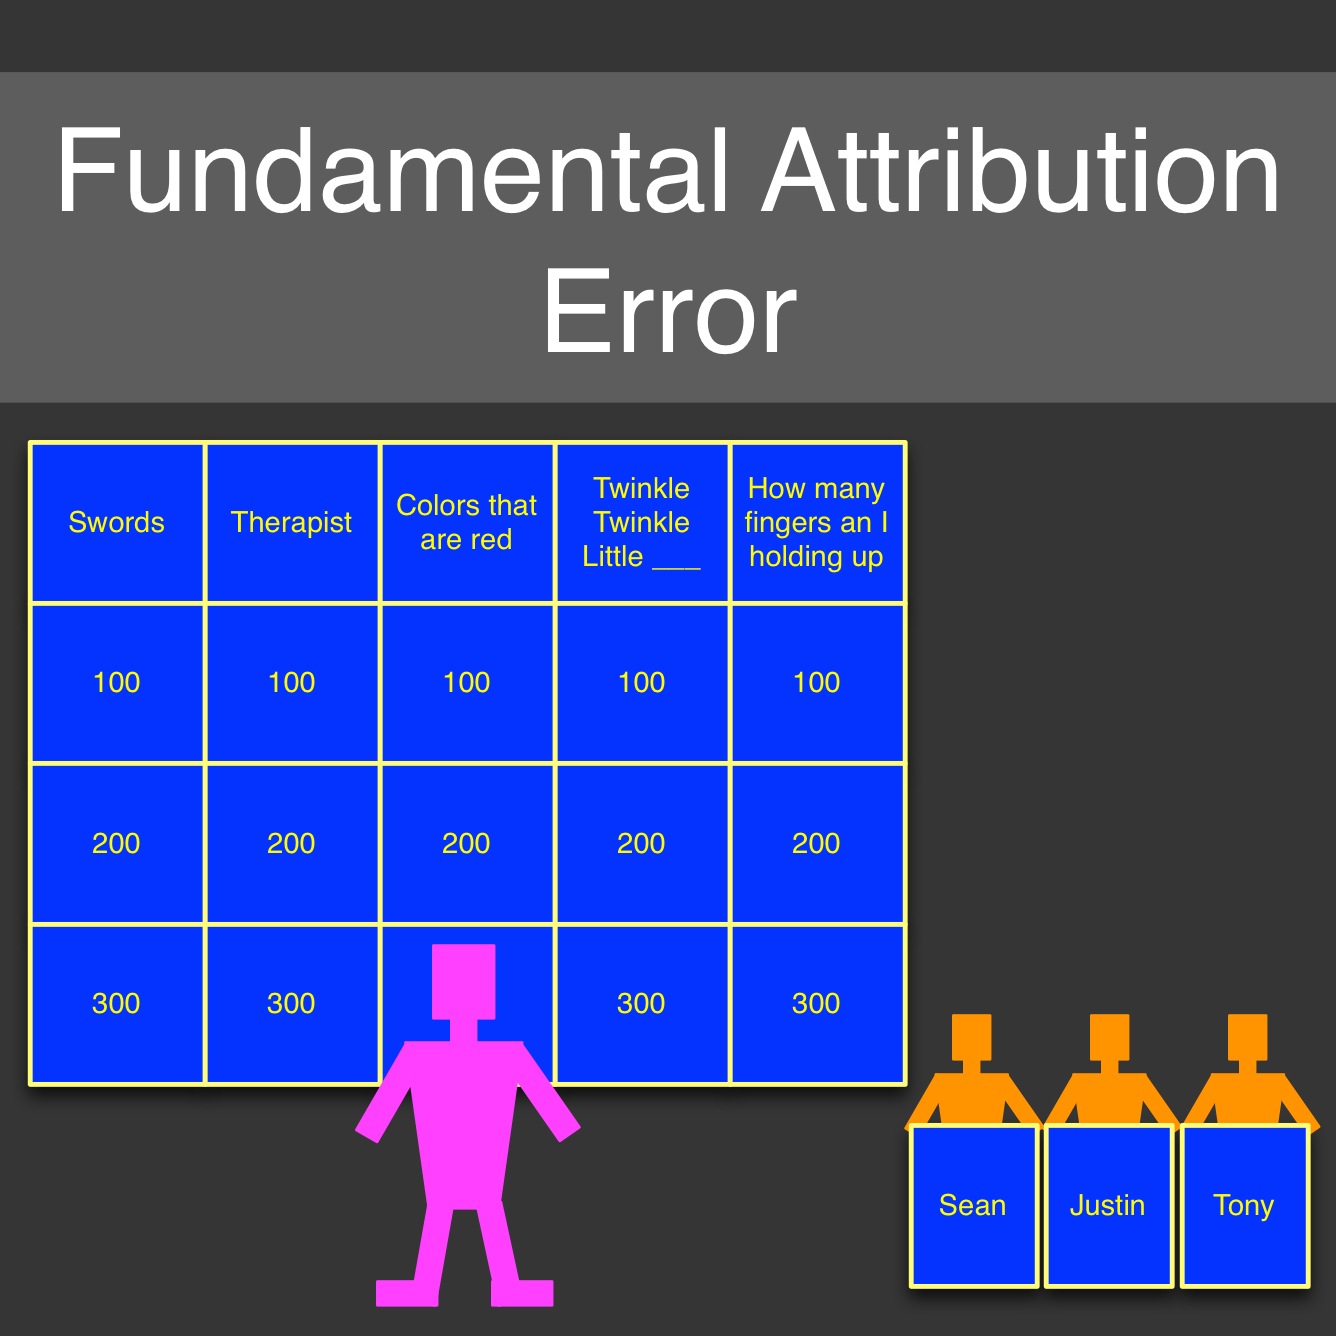 what is an example of fundamental attribution error